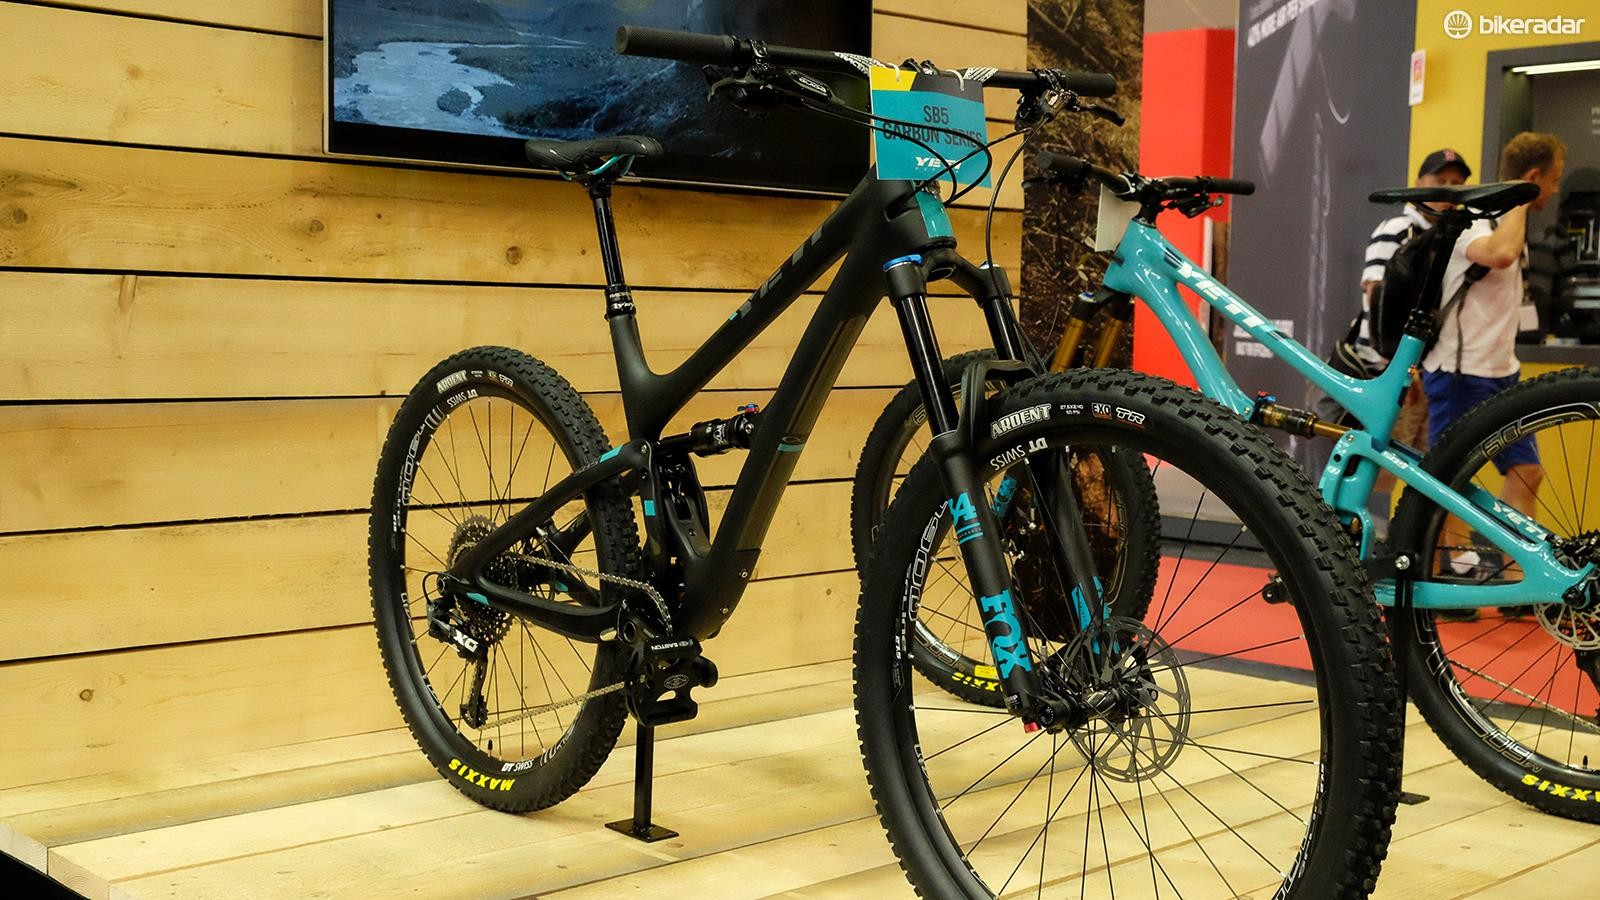 Starting this Fall, Yeti will offer more affordable versions of its carbon bikes. These Carbon frames come with a 250-400g weight increase over to top-end Turq carbon versions